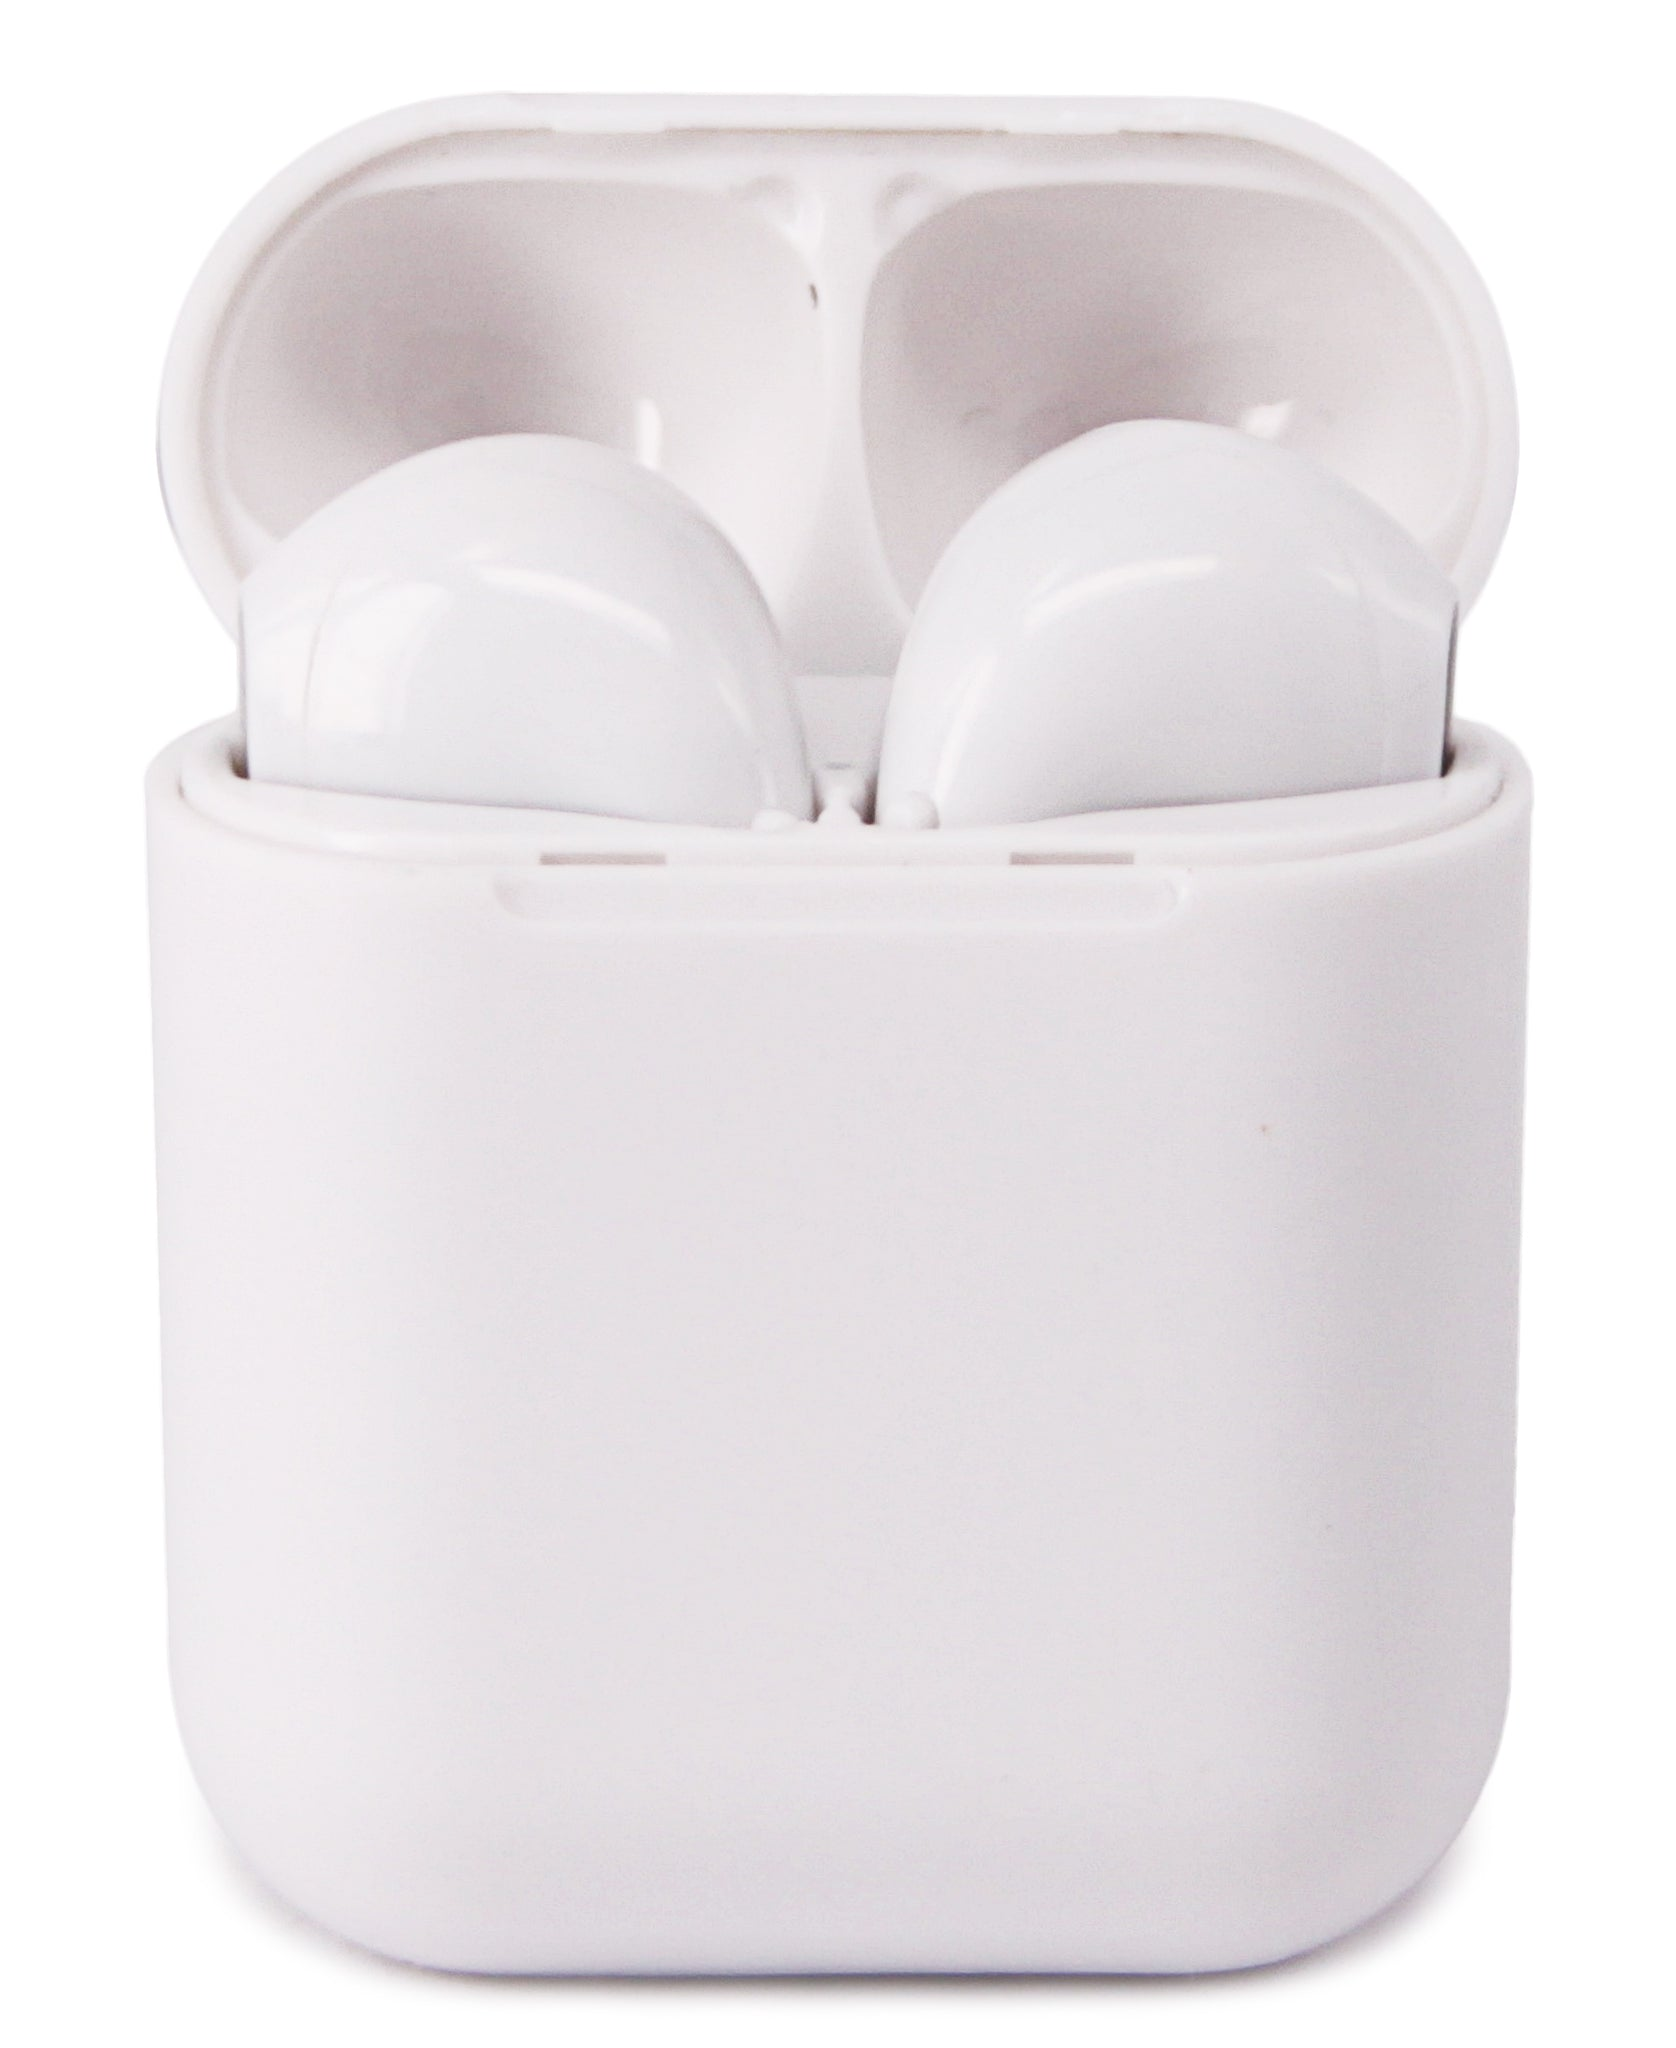 Bluetooth Earphones With Charging Case - White